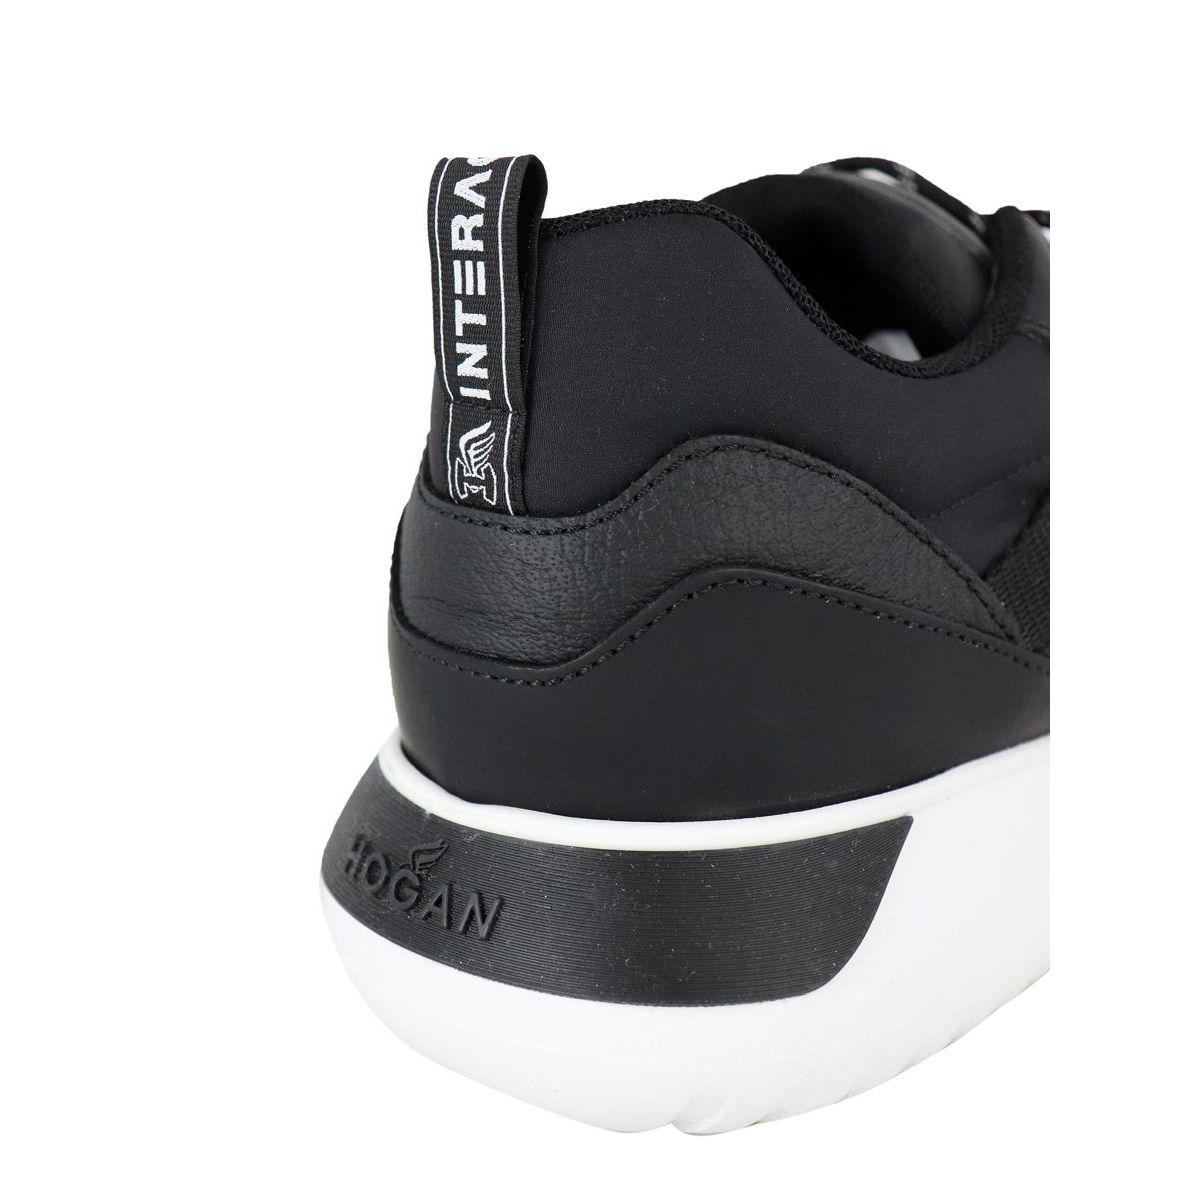 Sneakers in leather and mesh bottom 371 Black Hogan